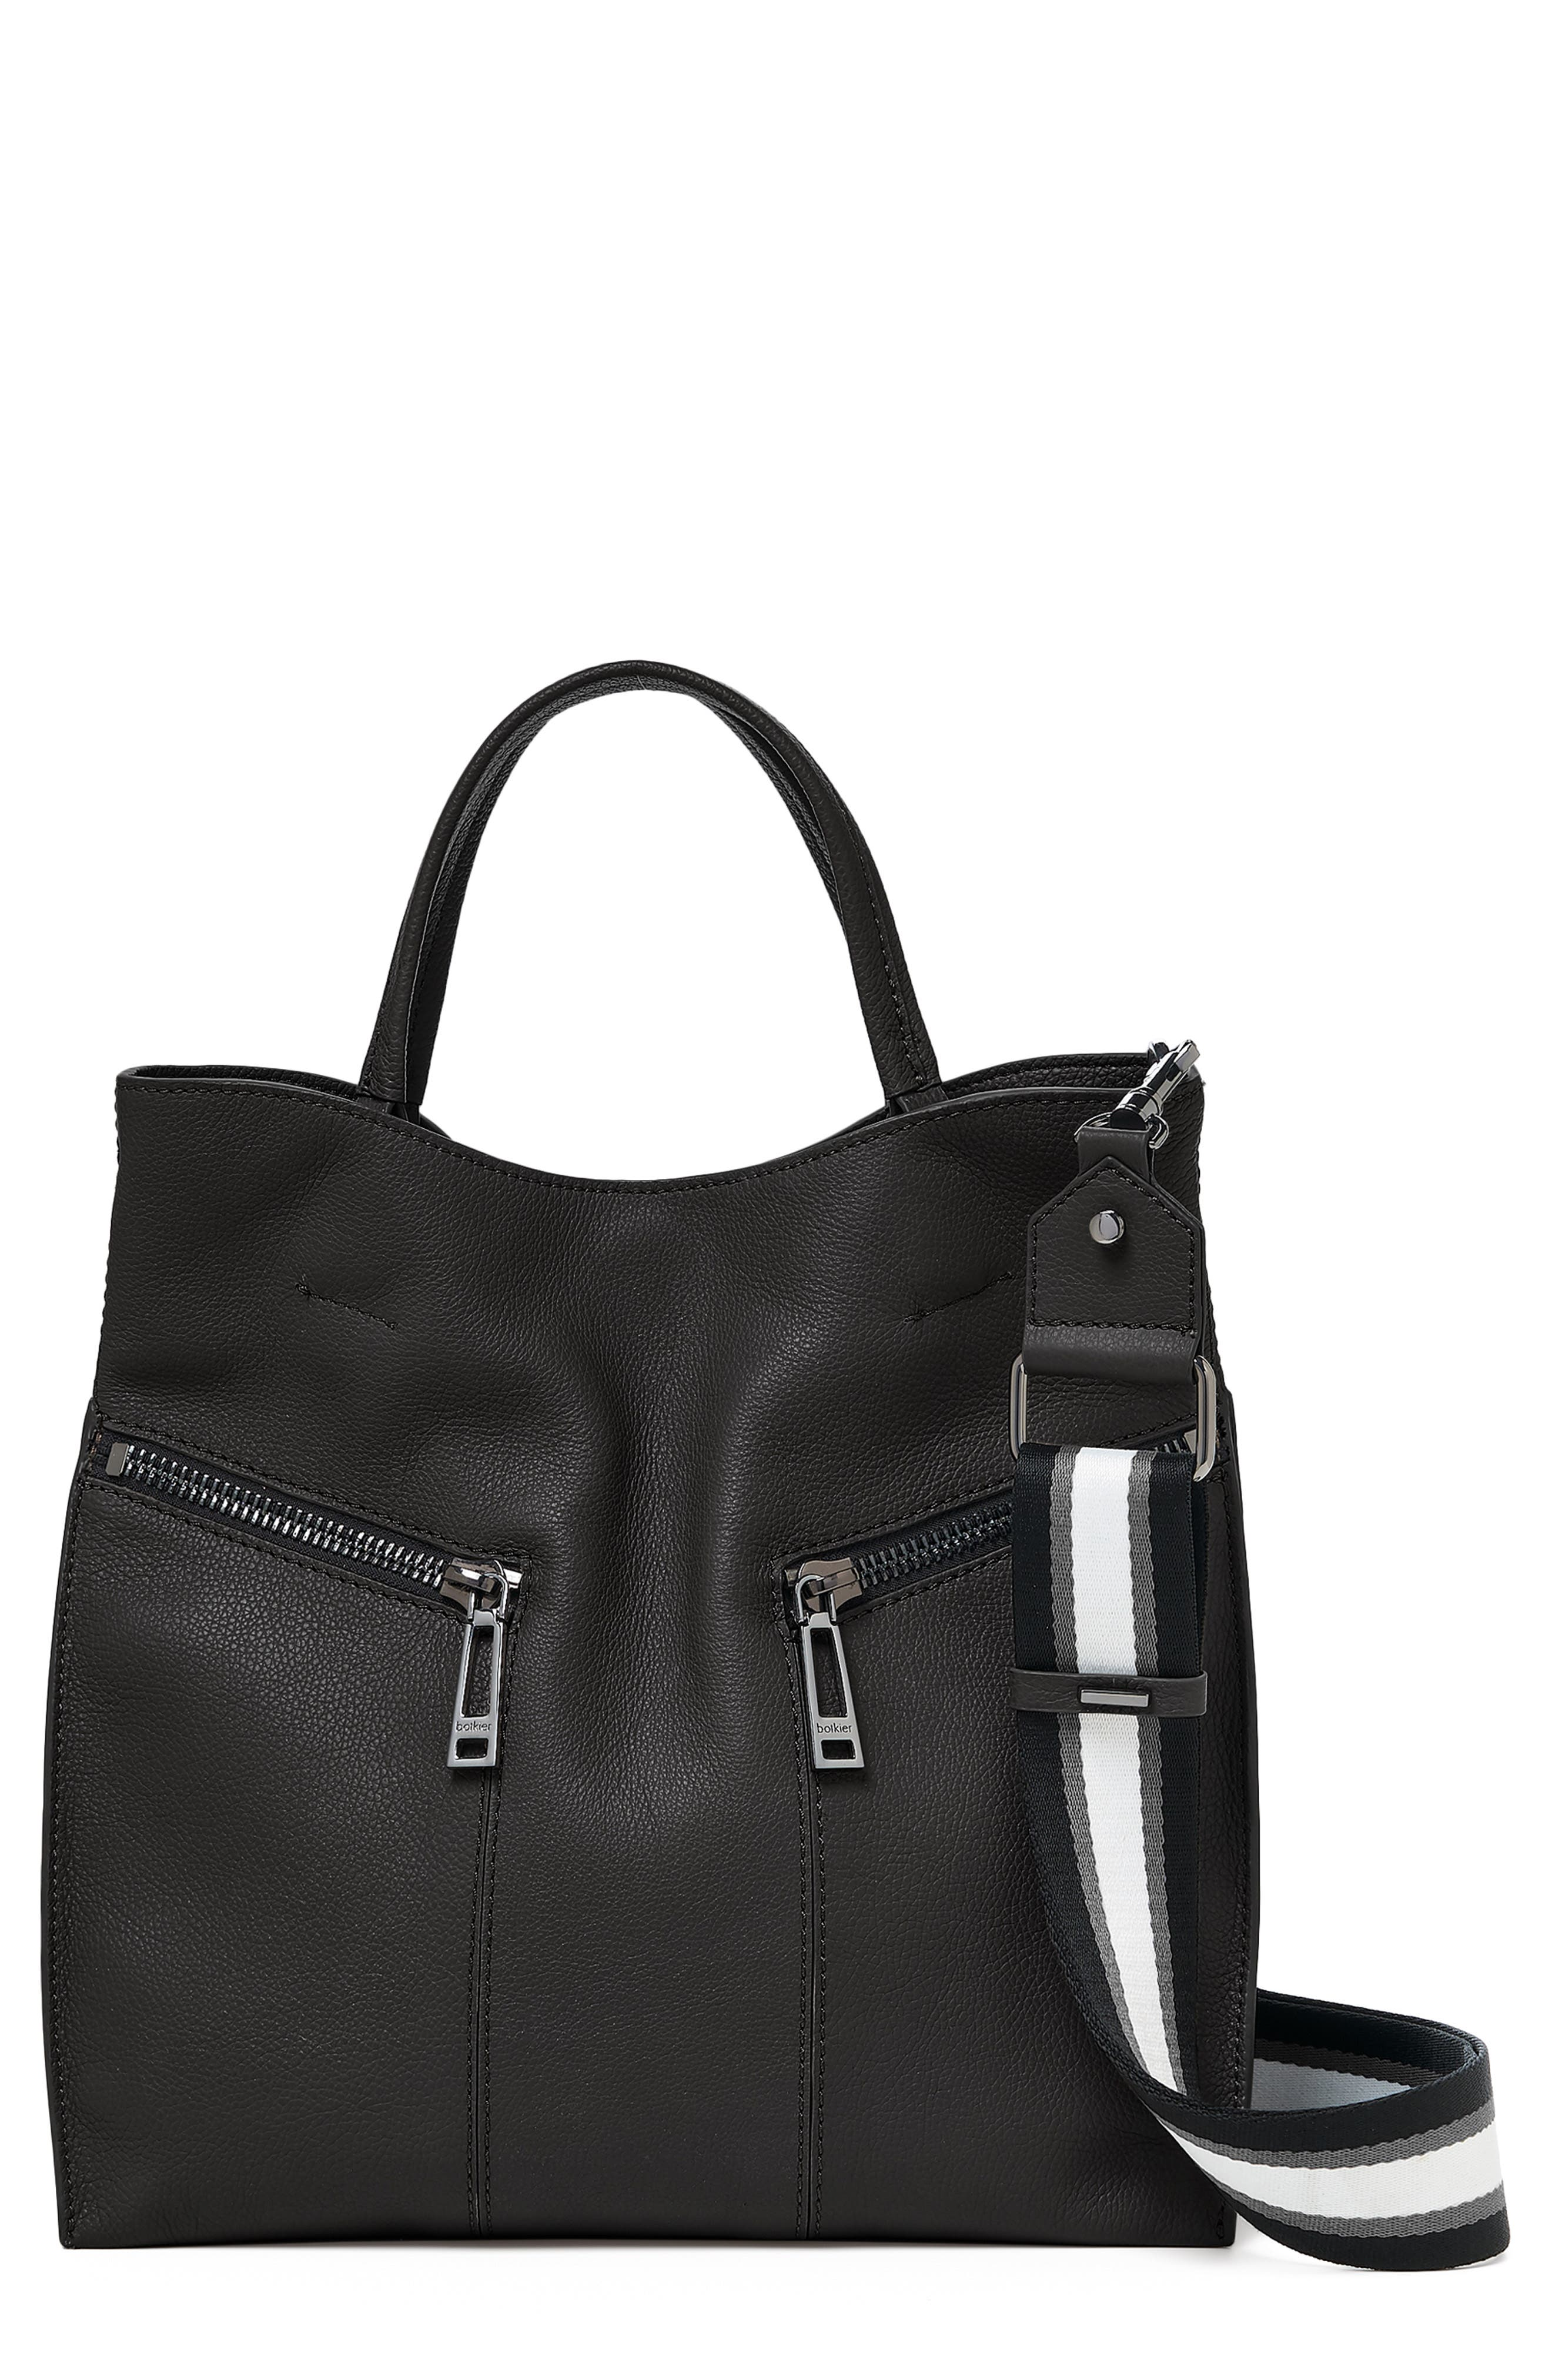 BOTKIER Trigger Pebbled Leather Satchel, Main, color, BLACK